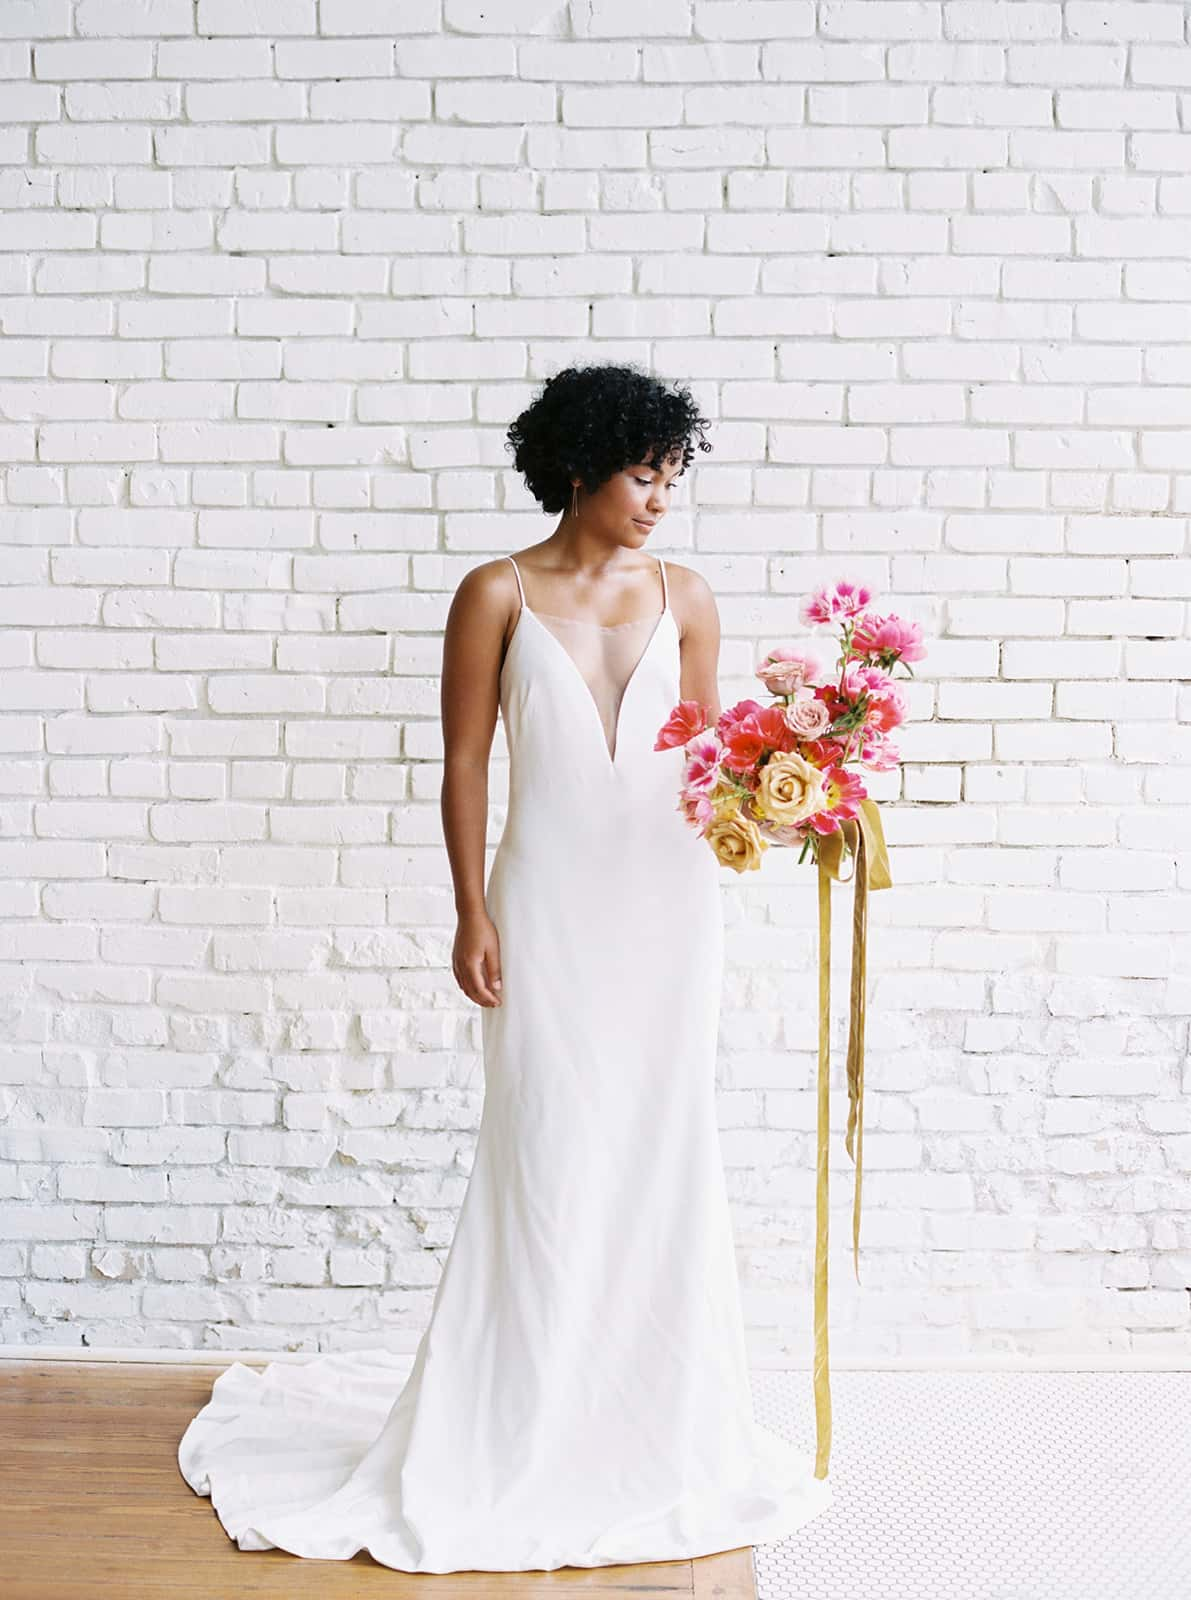 Bride with her bridal blooms designed by Color Theory Collective